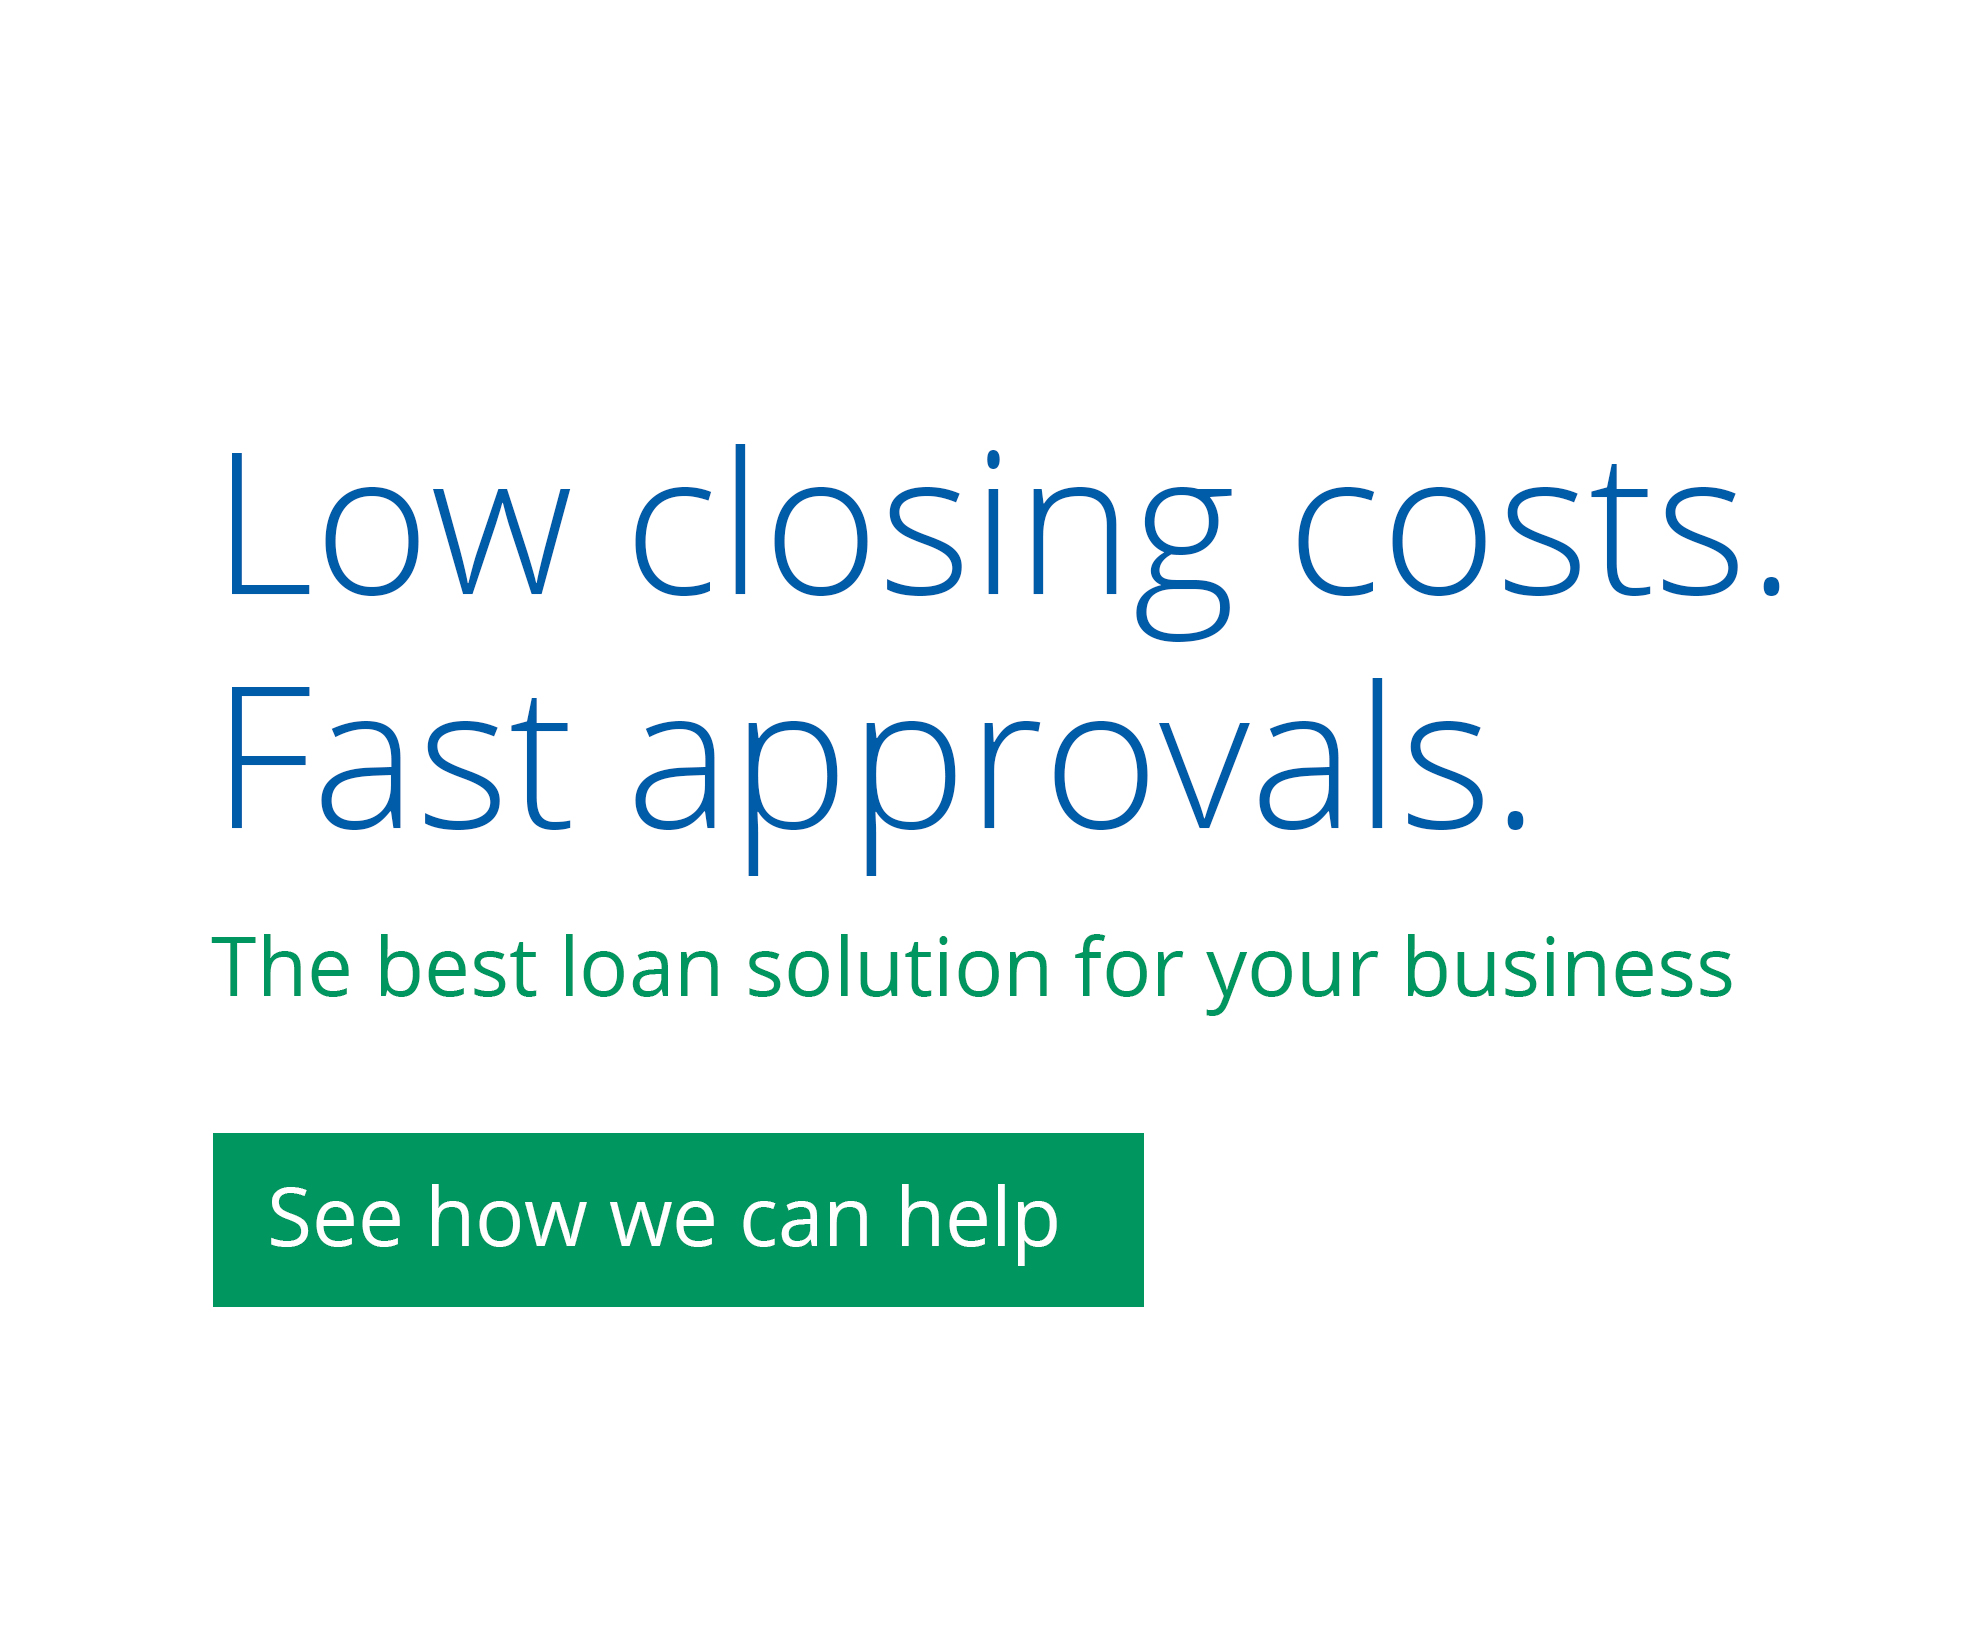 Low closing costs. Fast approvals. The best loan solution for your business.